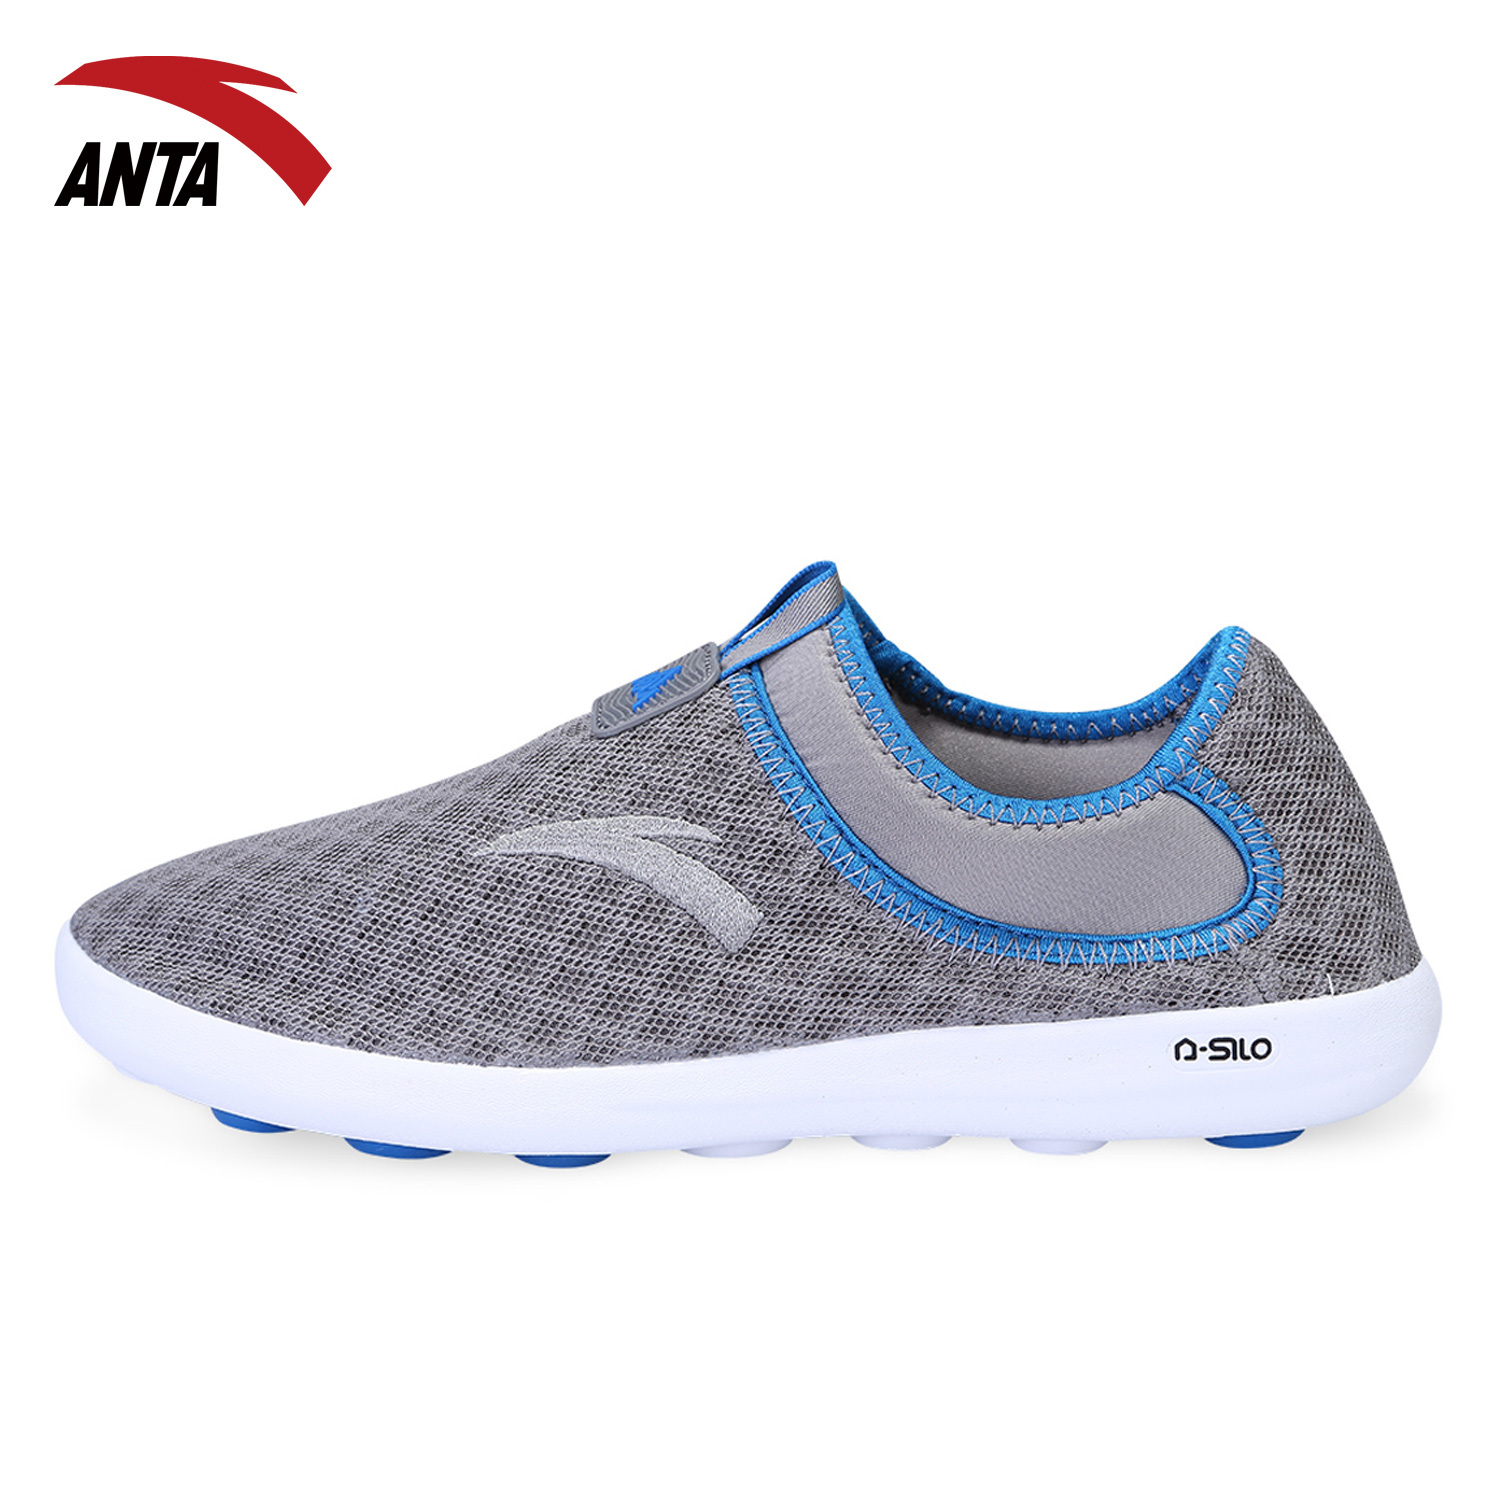 Anta amphibious shoes men sneakers women sneakers genuine Anta breathable outdoor shoes 2013 summer lovers shoes